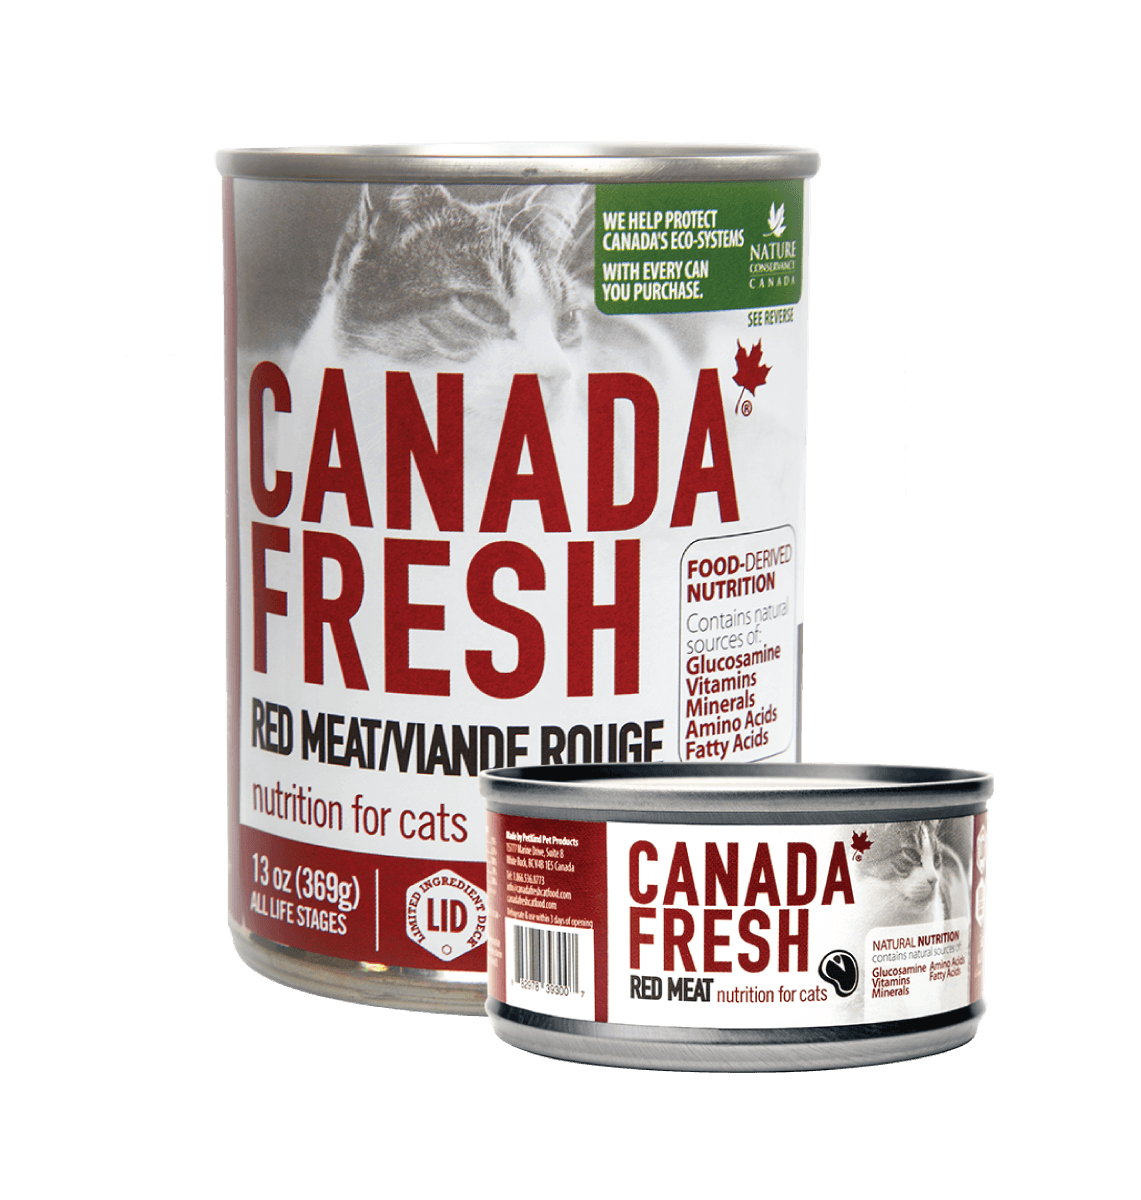 Canada Fresh Red Meat for cat (13 oz and 5.5 oz)